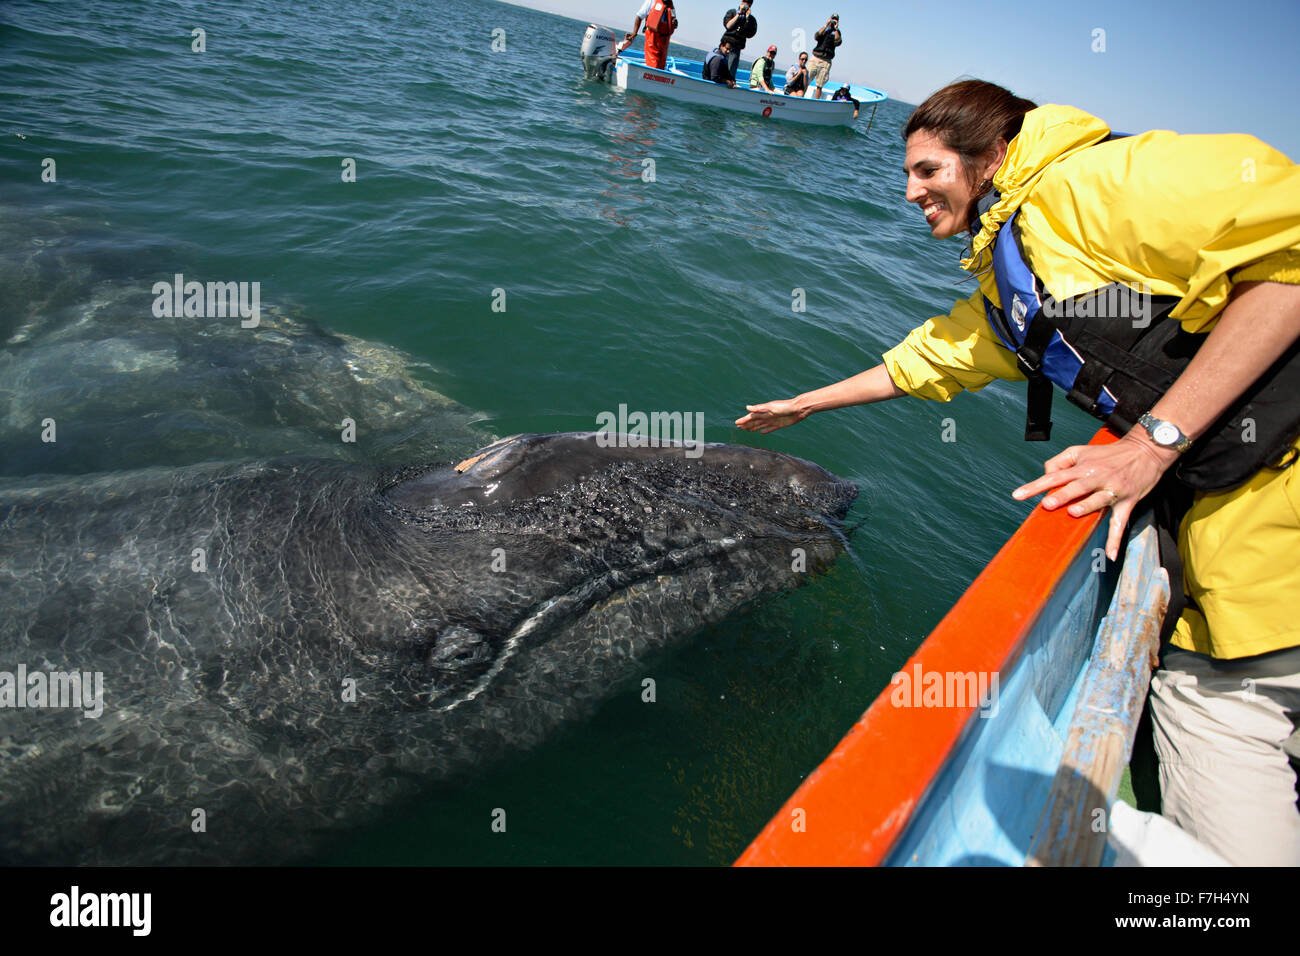 pr0101-D. Gray Whales (Eschrichtius robustus). Baja, Mexico, Pacific Ocean. 'Friendlies'- mom and baby- - Stock Image